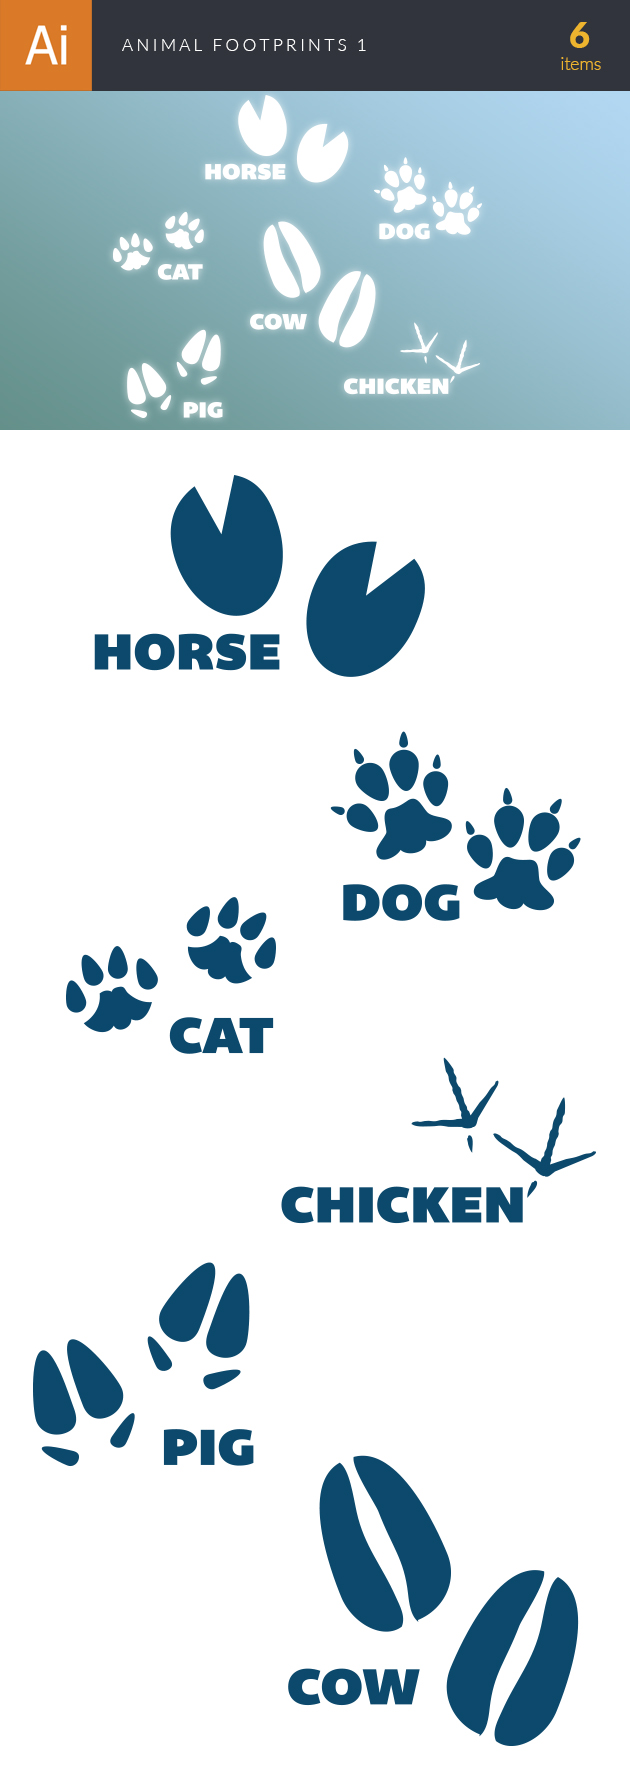 Animals Footprints Vector Set 1 designtnt animals footprints vector set 1 vector large